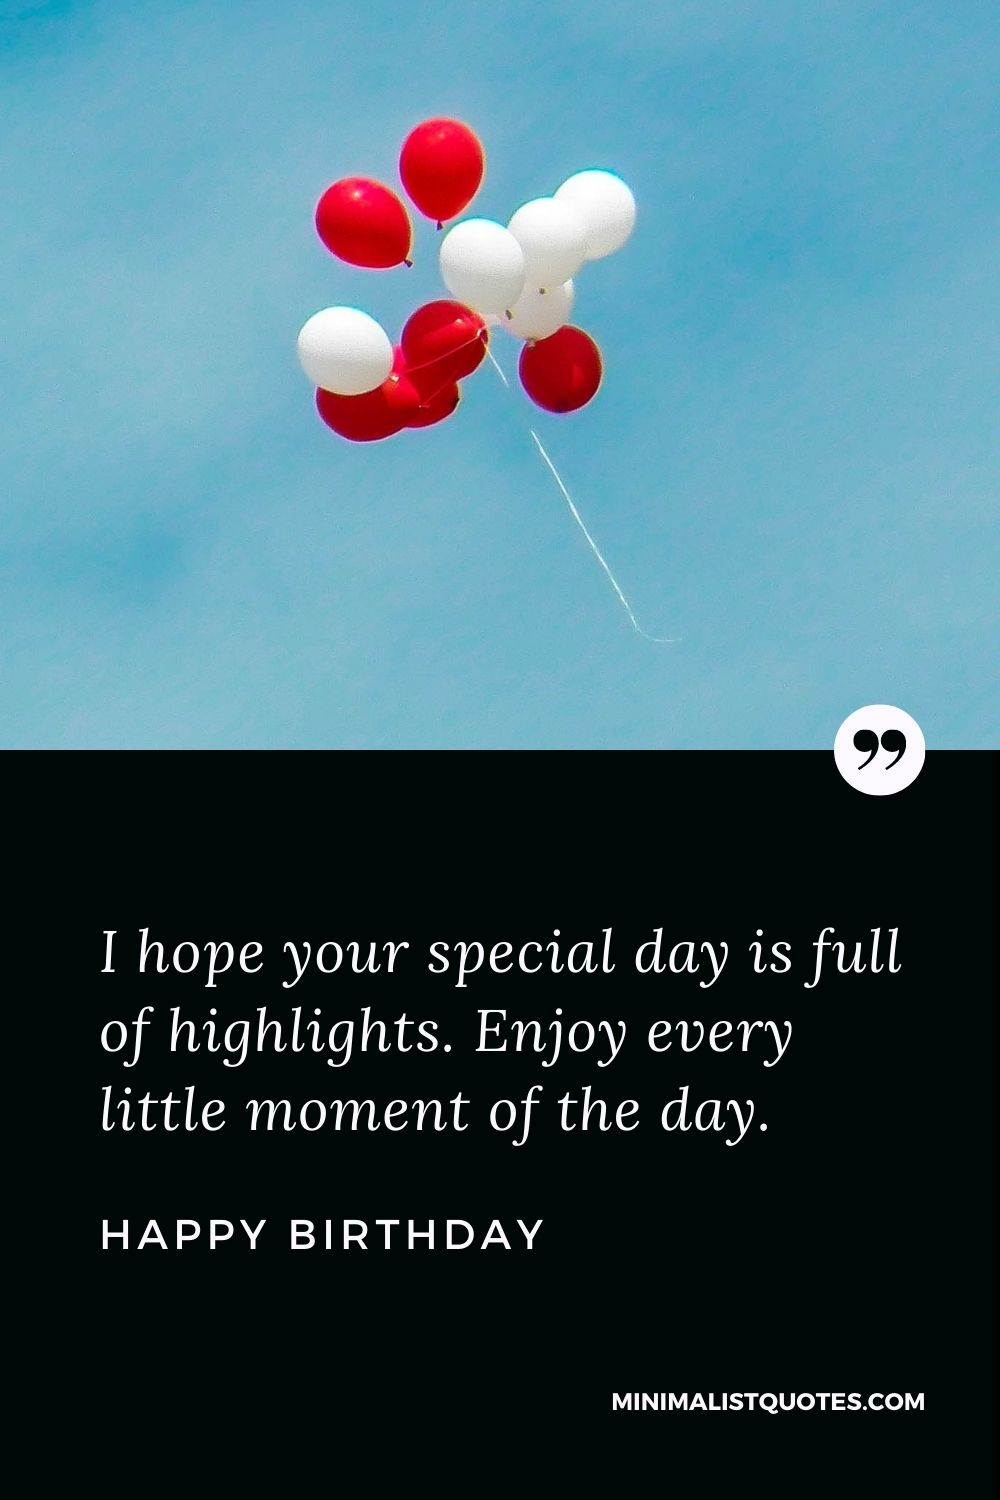 Happy Birthday Wishes - I hope your special day is full of highlights. Enjoy every little moment of the day.